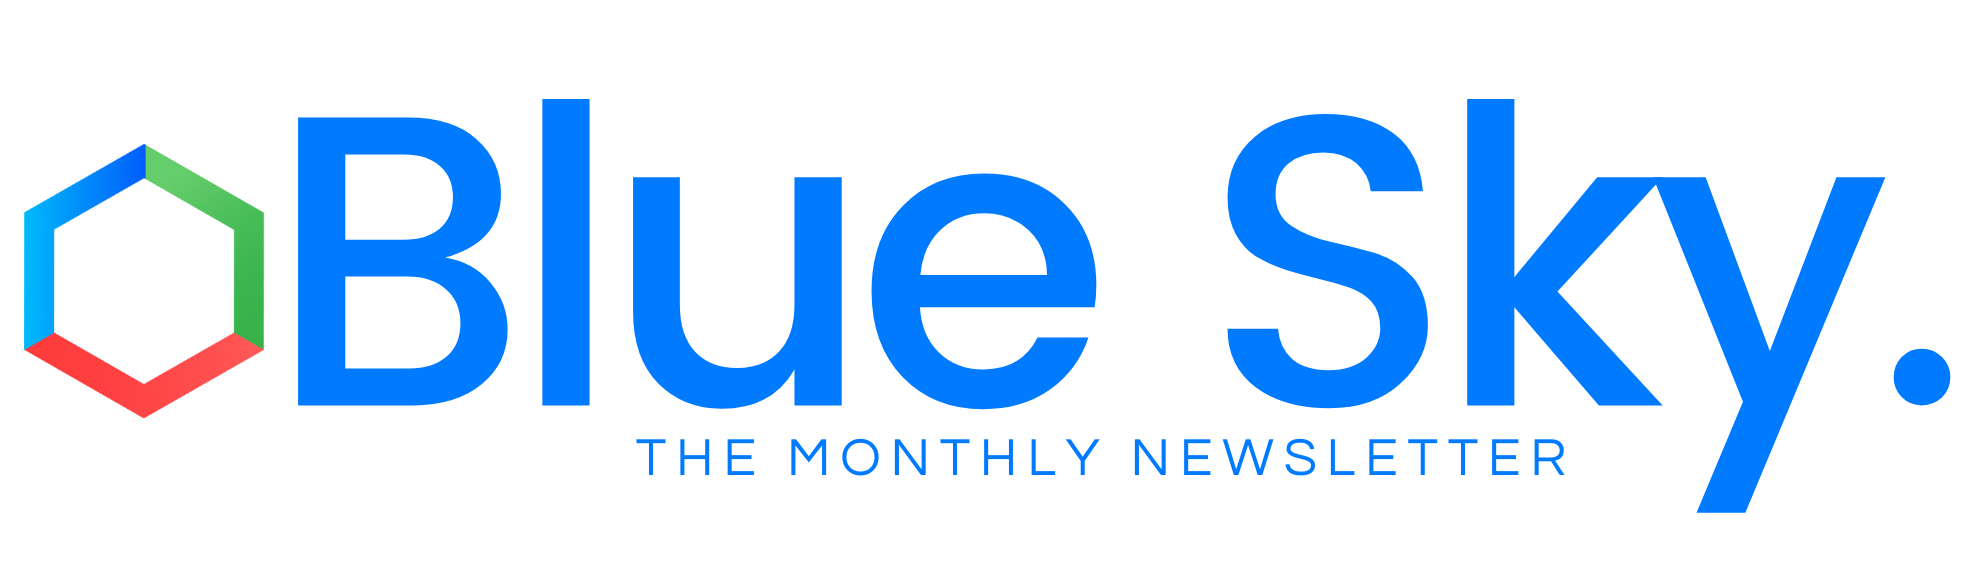 Banner saying Blue Sky- The Monthly Newsletter with company logo